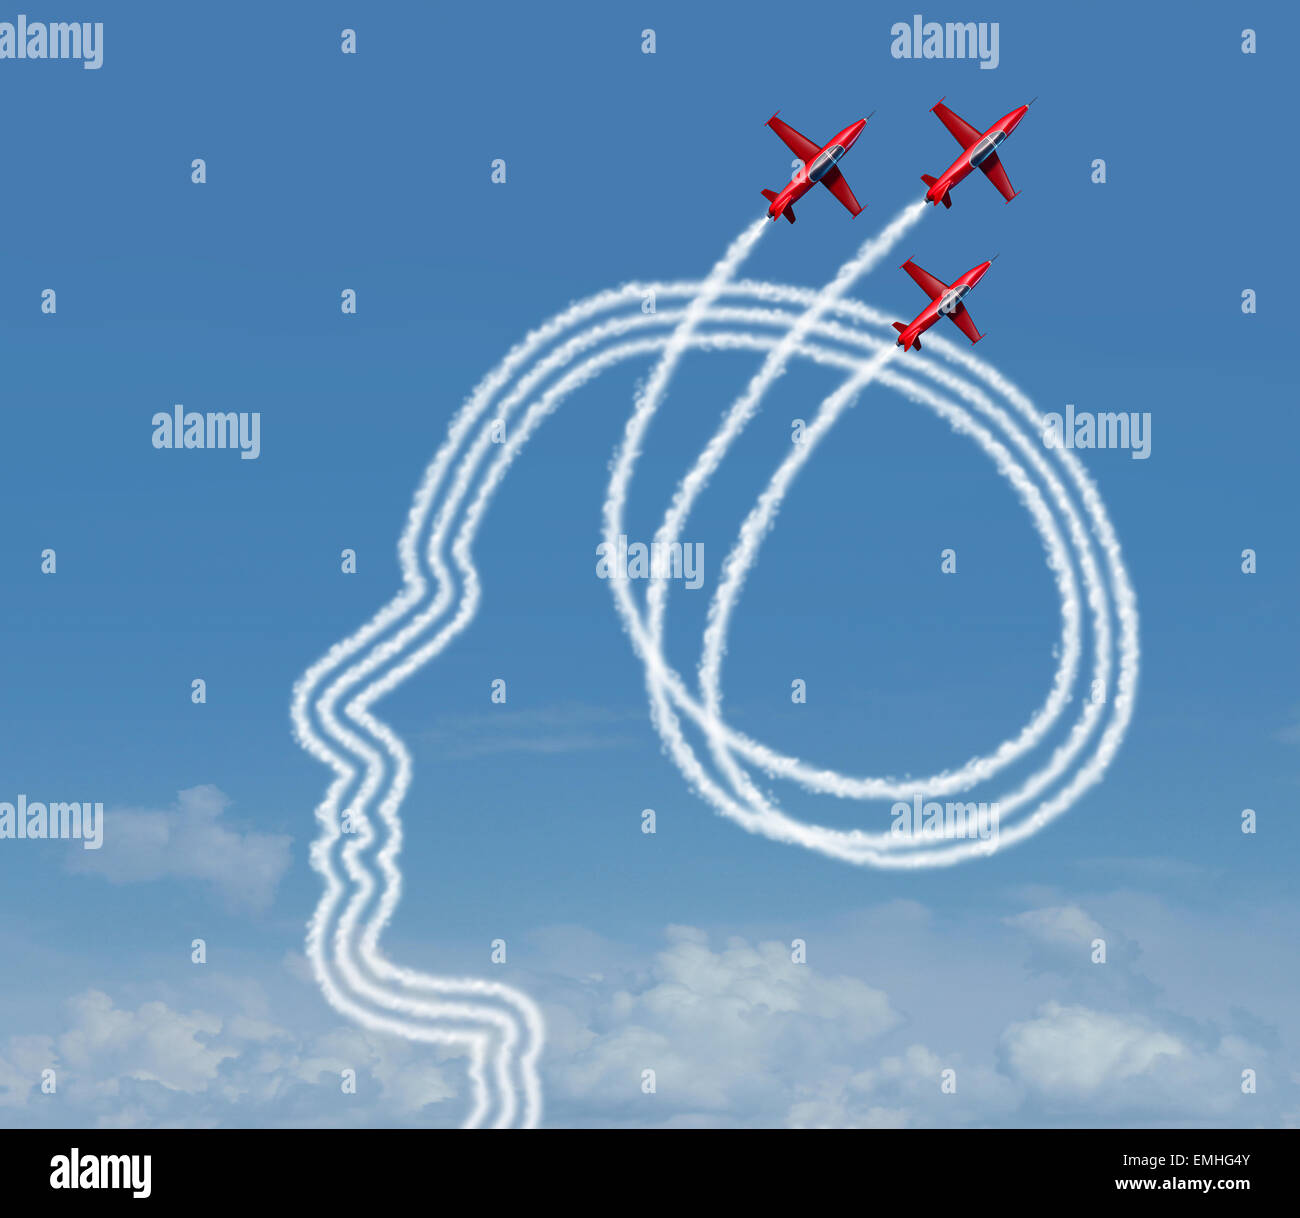 Personal achievement and career aspiration concept as a group of acrobatic jet airplanes performing an air show - Stock Image